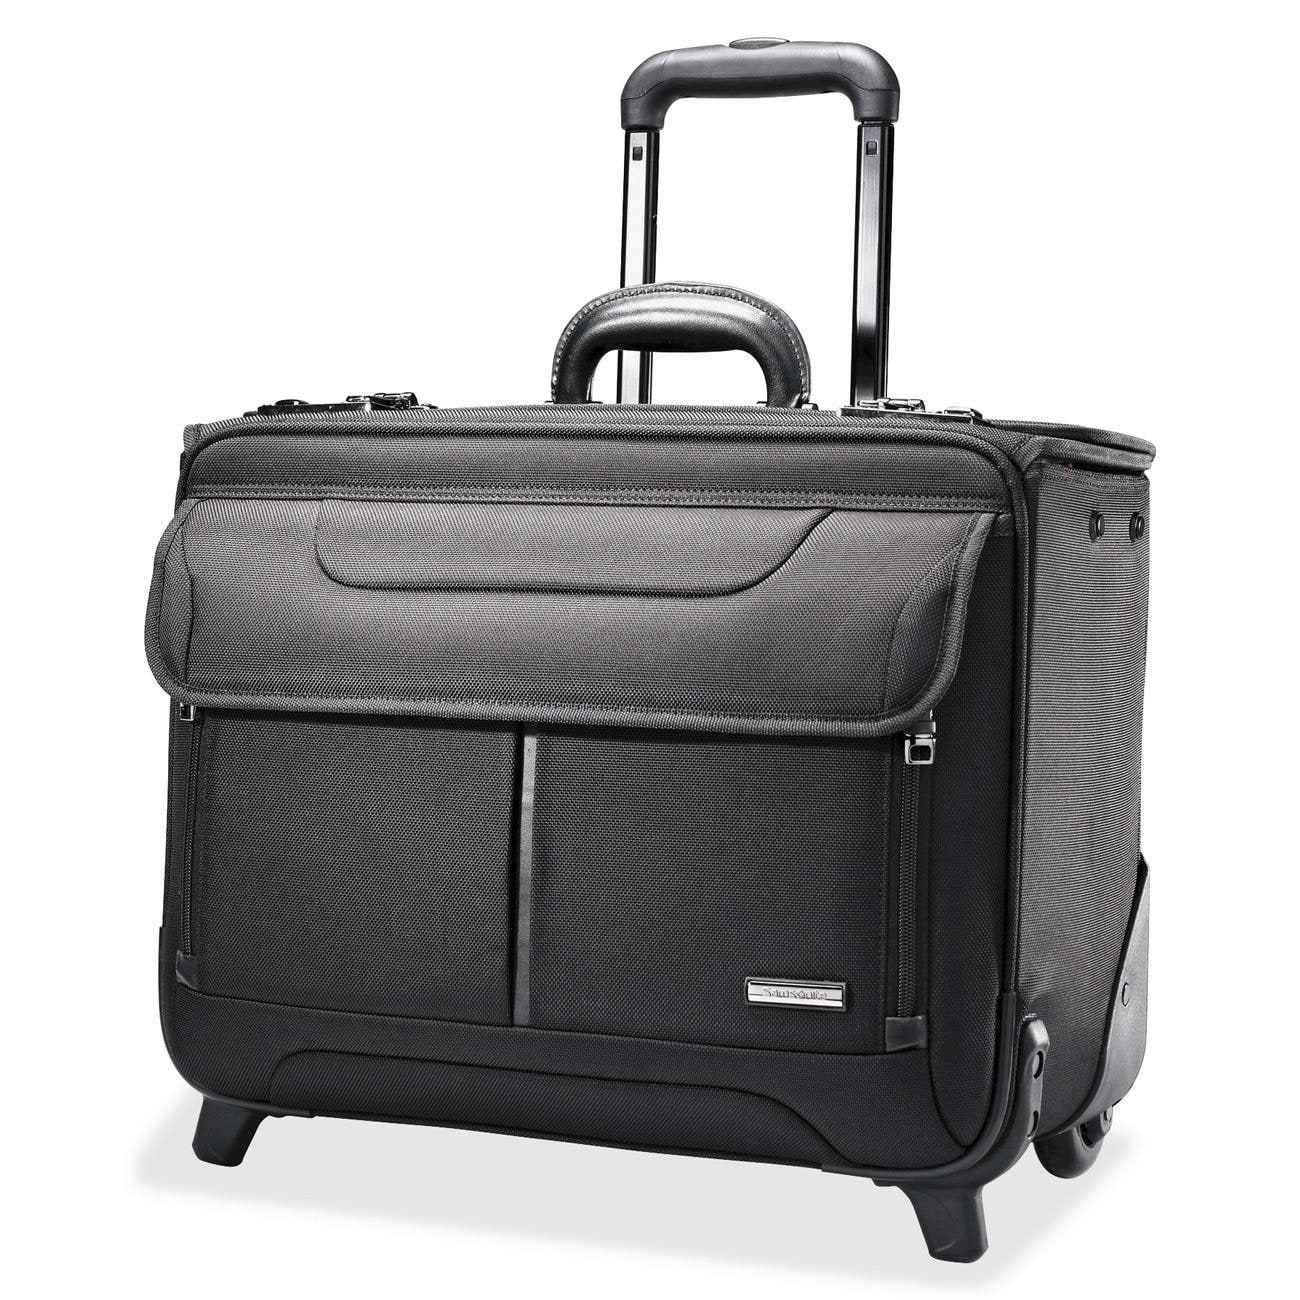 "Samsonite Beacon Carrying Case for 17"" Notebook, PDA, Cel..."